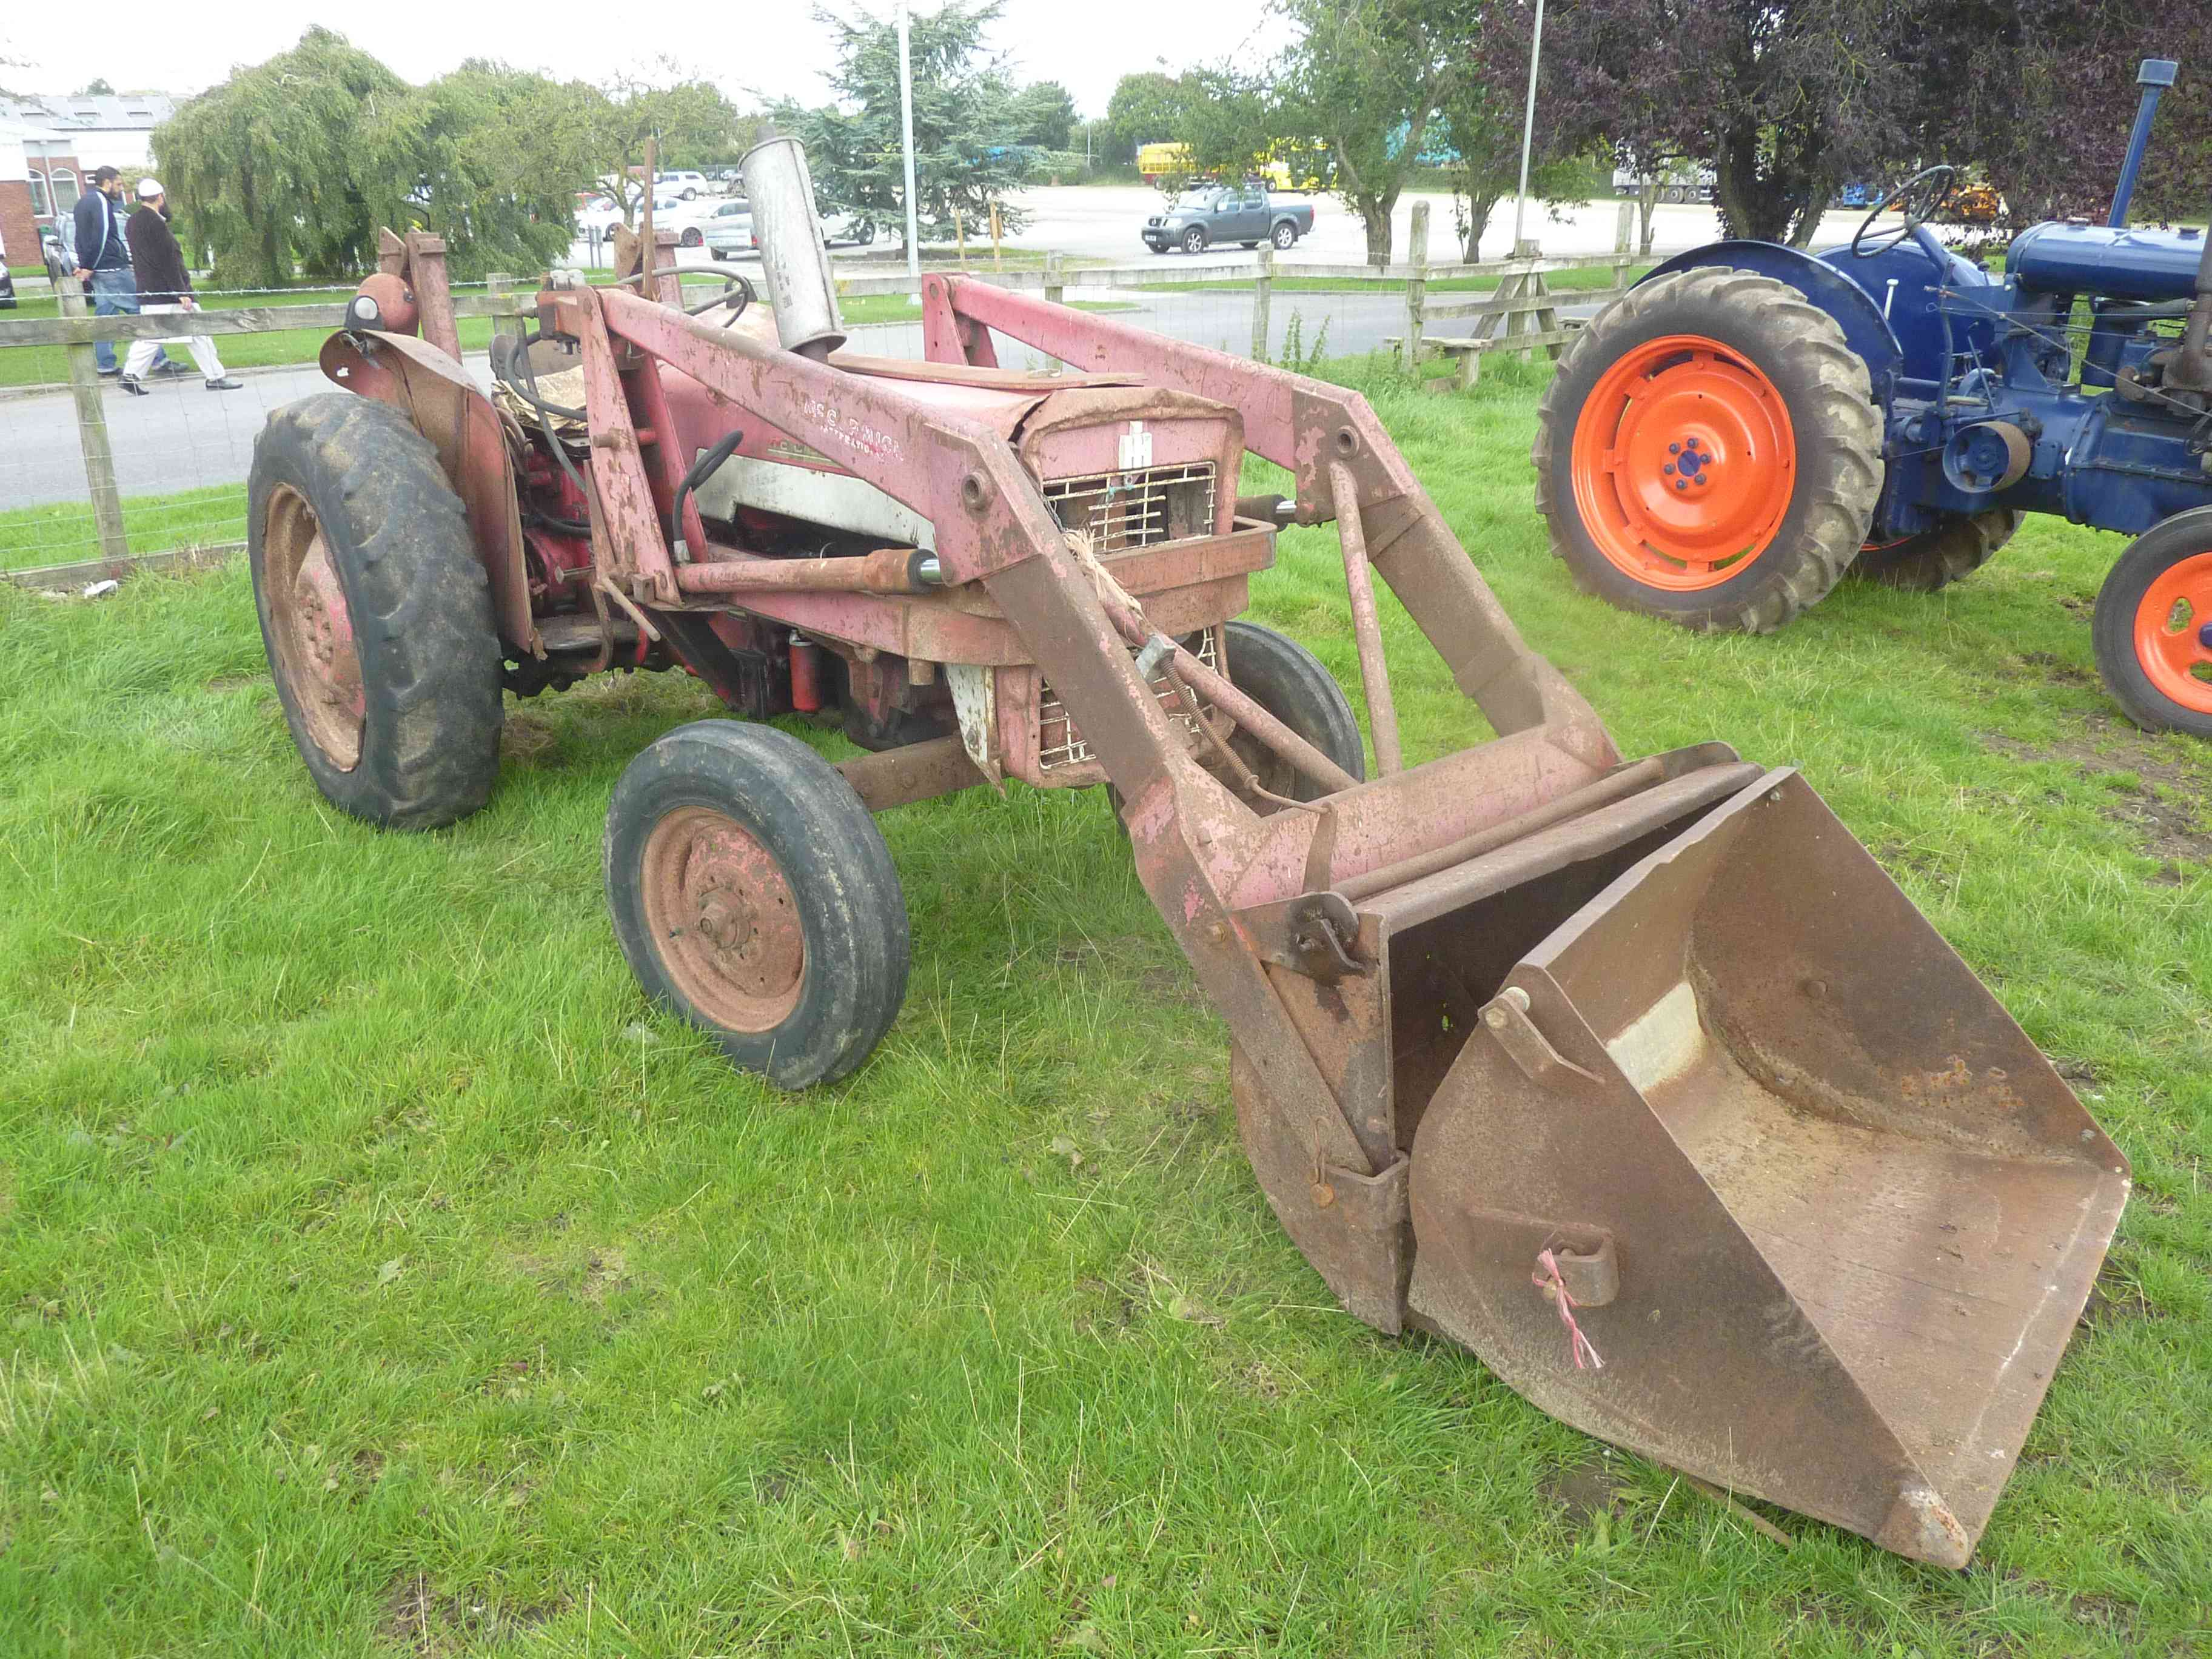 Lot 4826 - 4826 McCormick International 434 tractor (1968) with loader,  muck fork